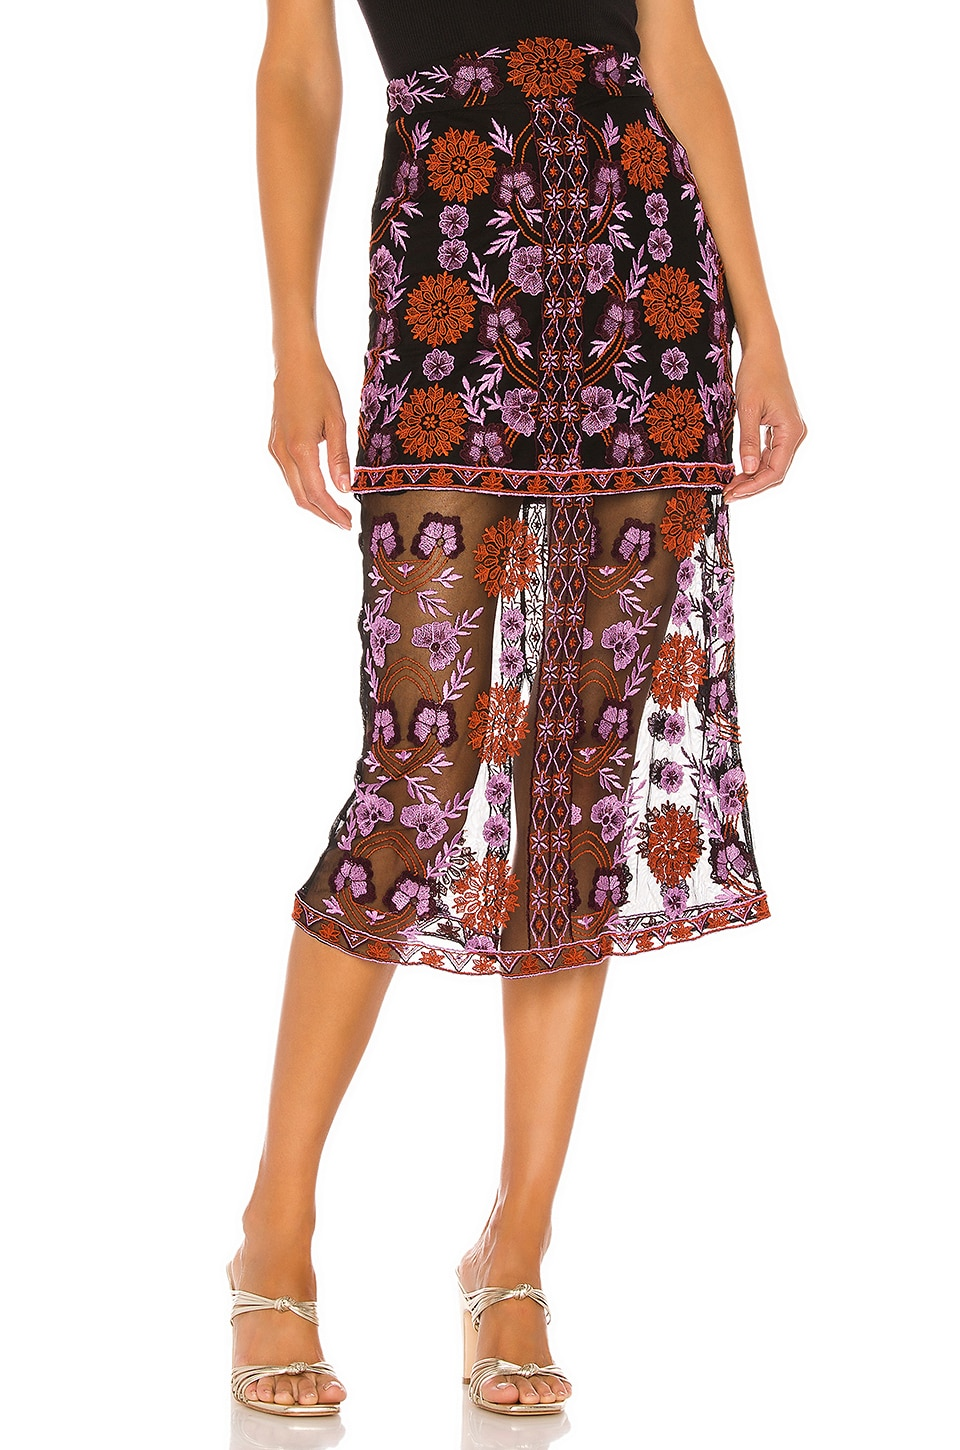 House of Harlow 1960 x REVOLVE Ariana Midi Skirt in Noir Multi